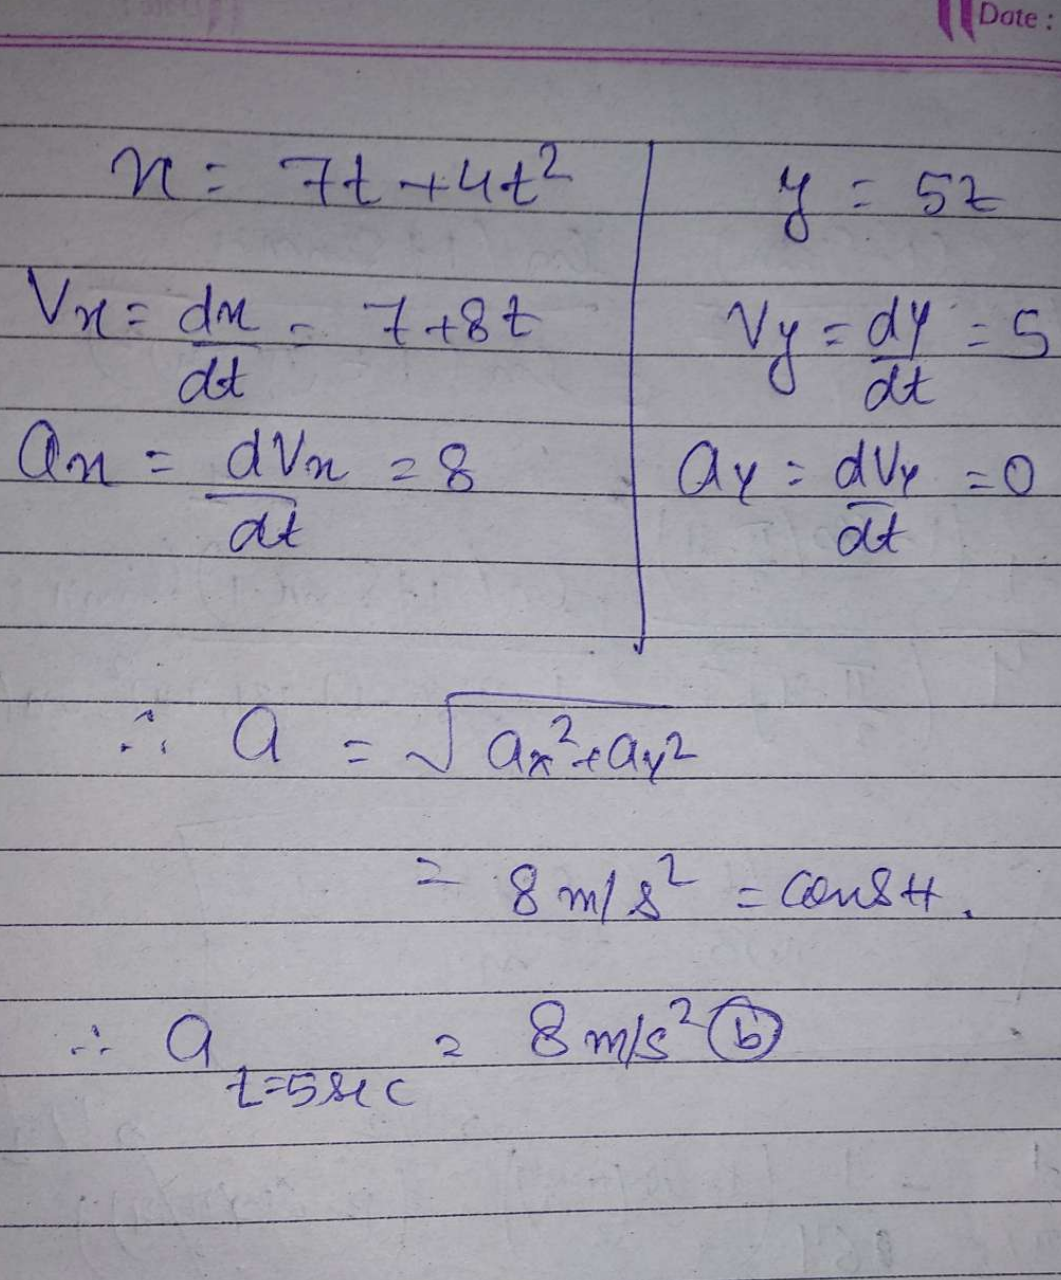 The x an y coordinates of a particle at any time t is given by x =7t + 4t² and y = 5t, where x and y are in metre and t in seconds. The acceleration of particle at t= 5 s is